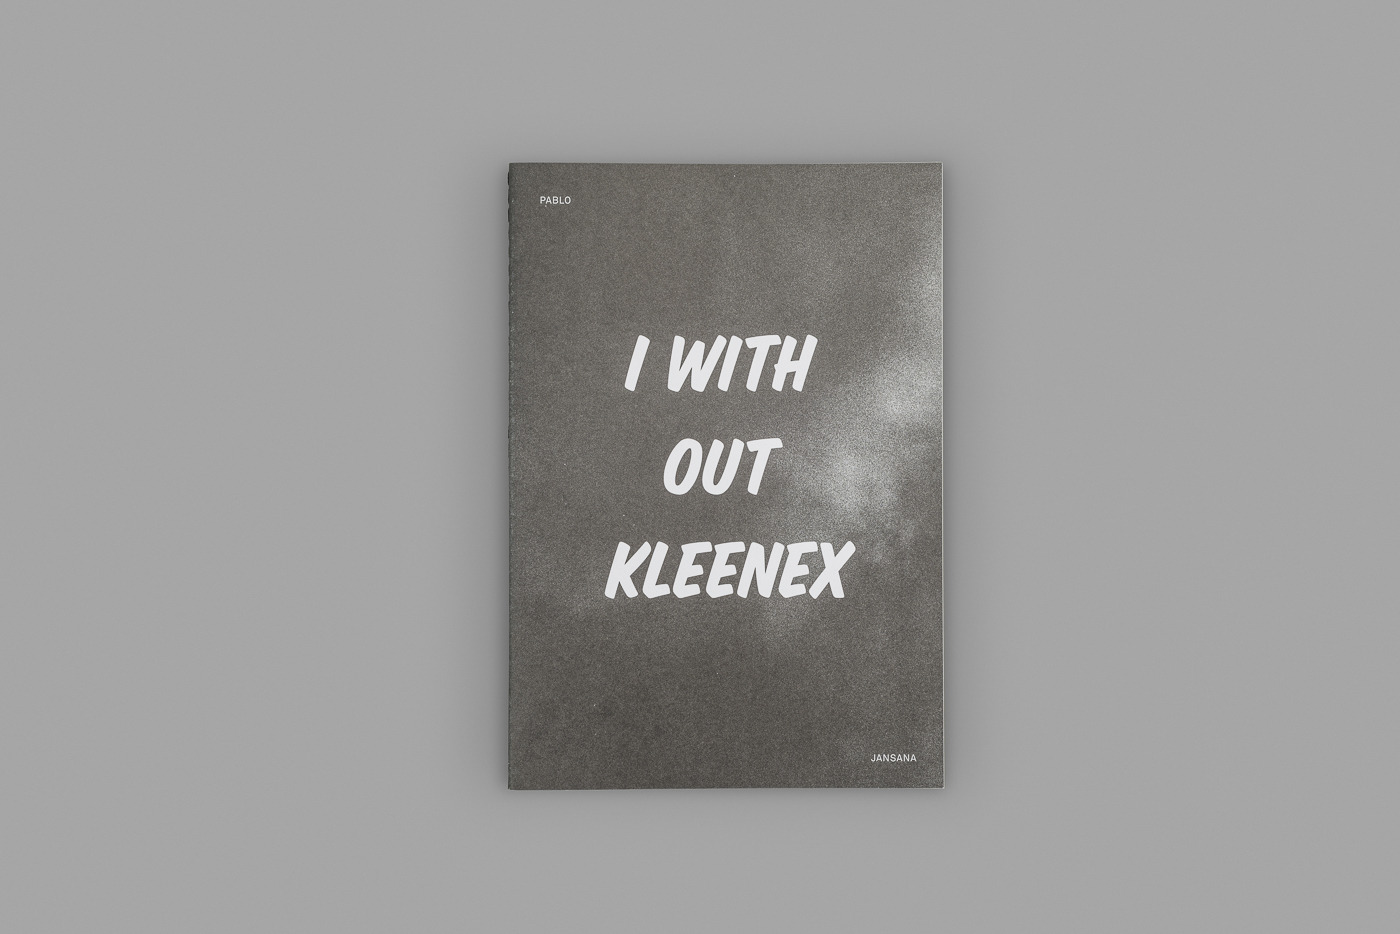 I with out kleenex | Sebastián Rodriguez Besa